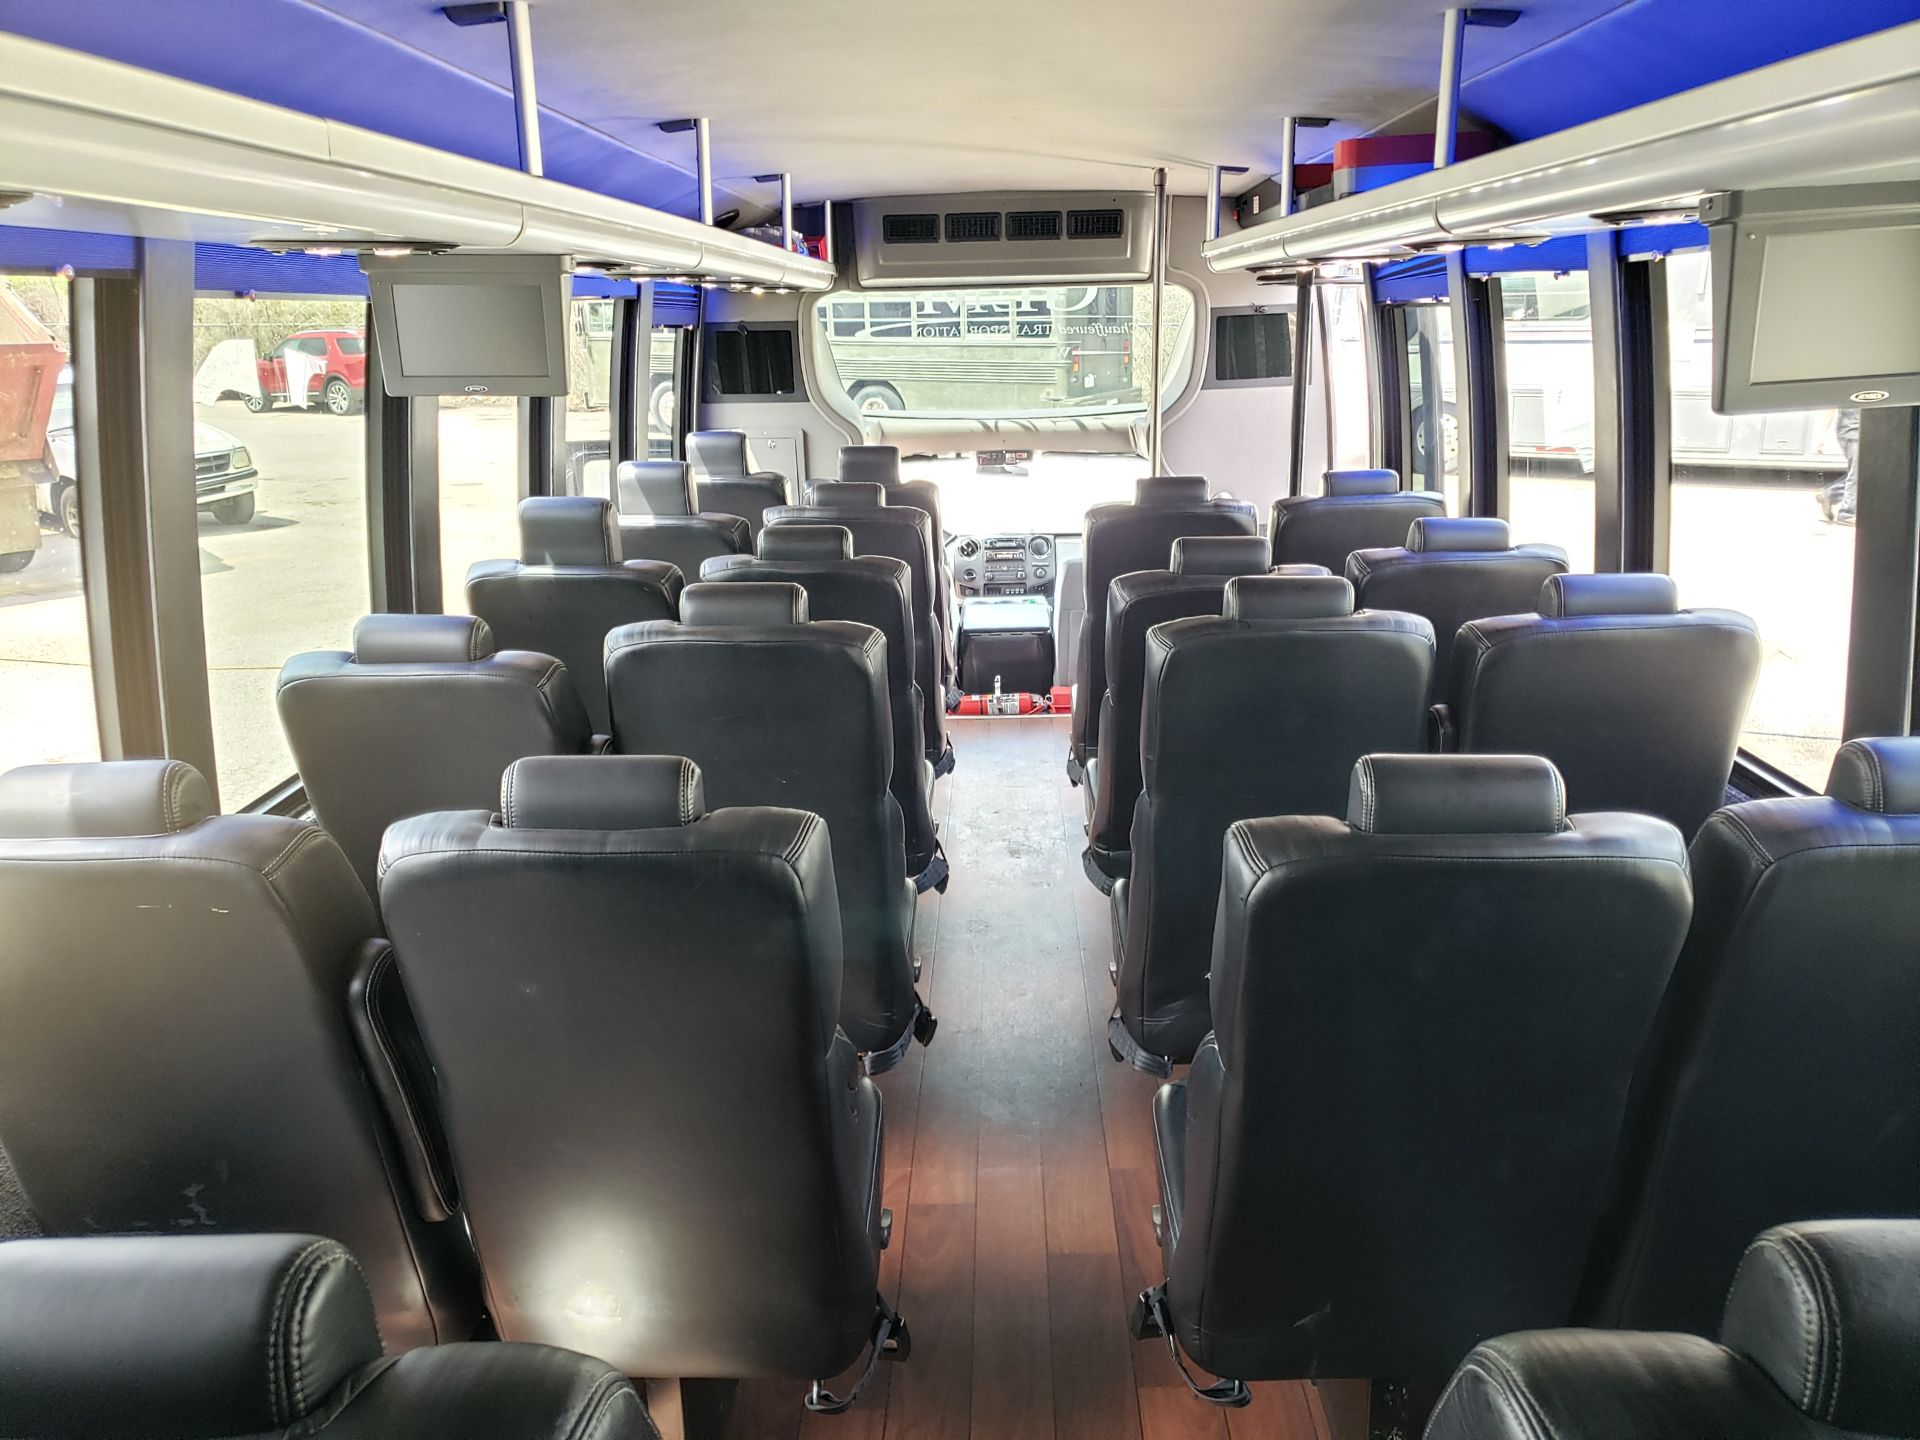 2013 Ford F550SD XL Grech Motors 33-Pass Shuttle Bus - Image 13 of 18